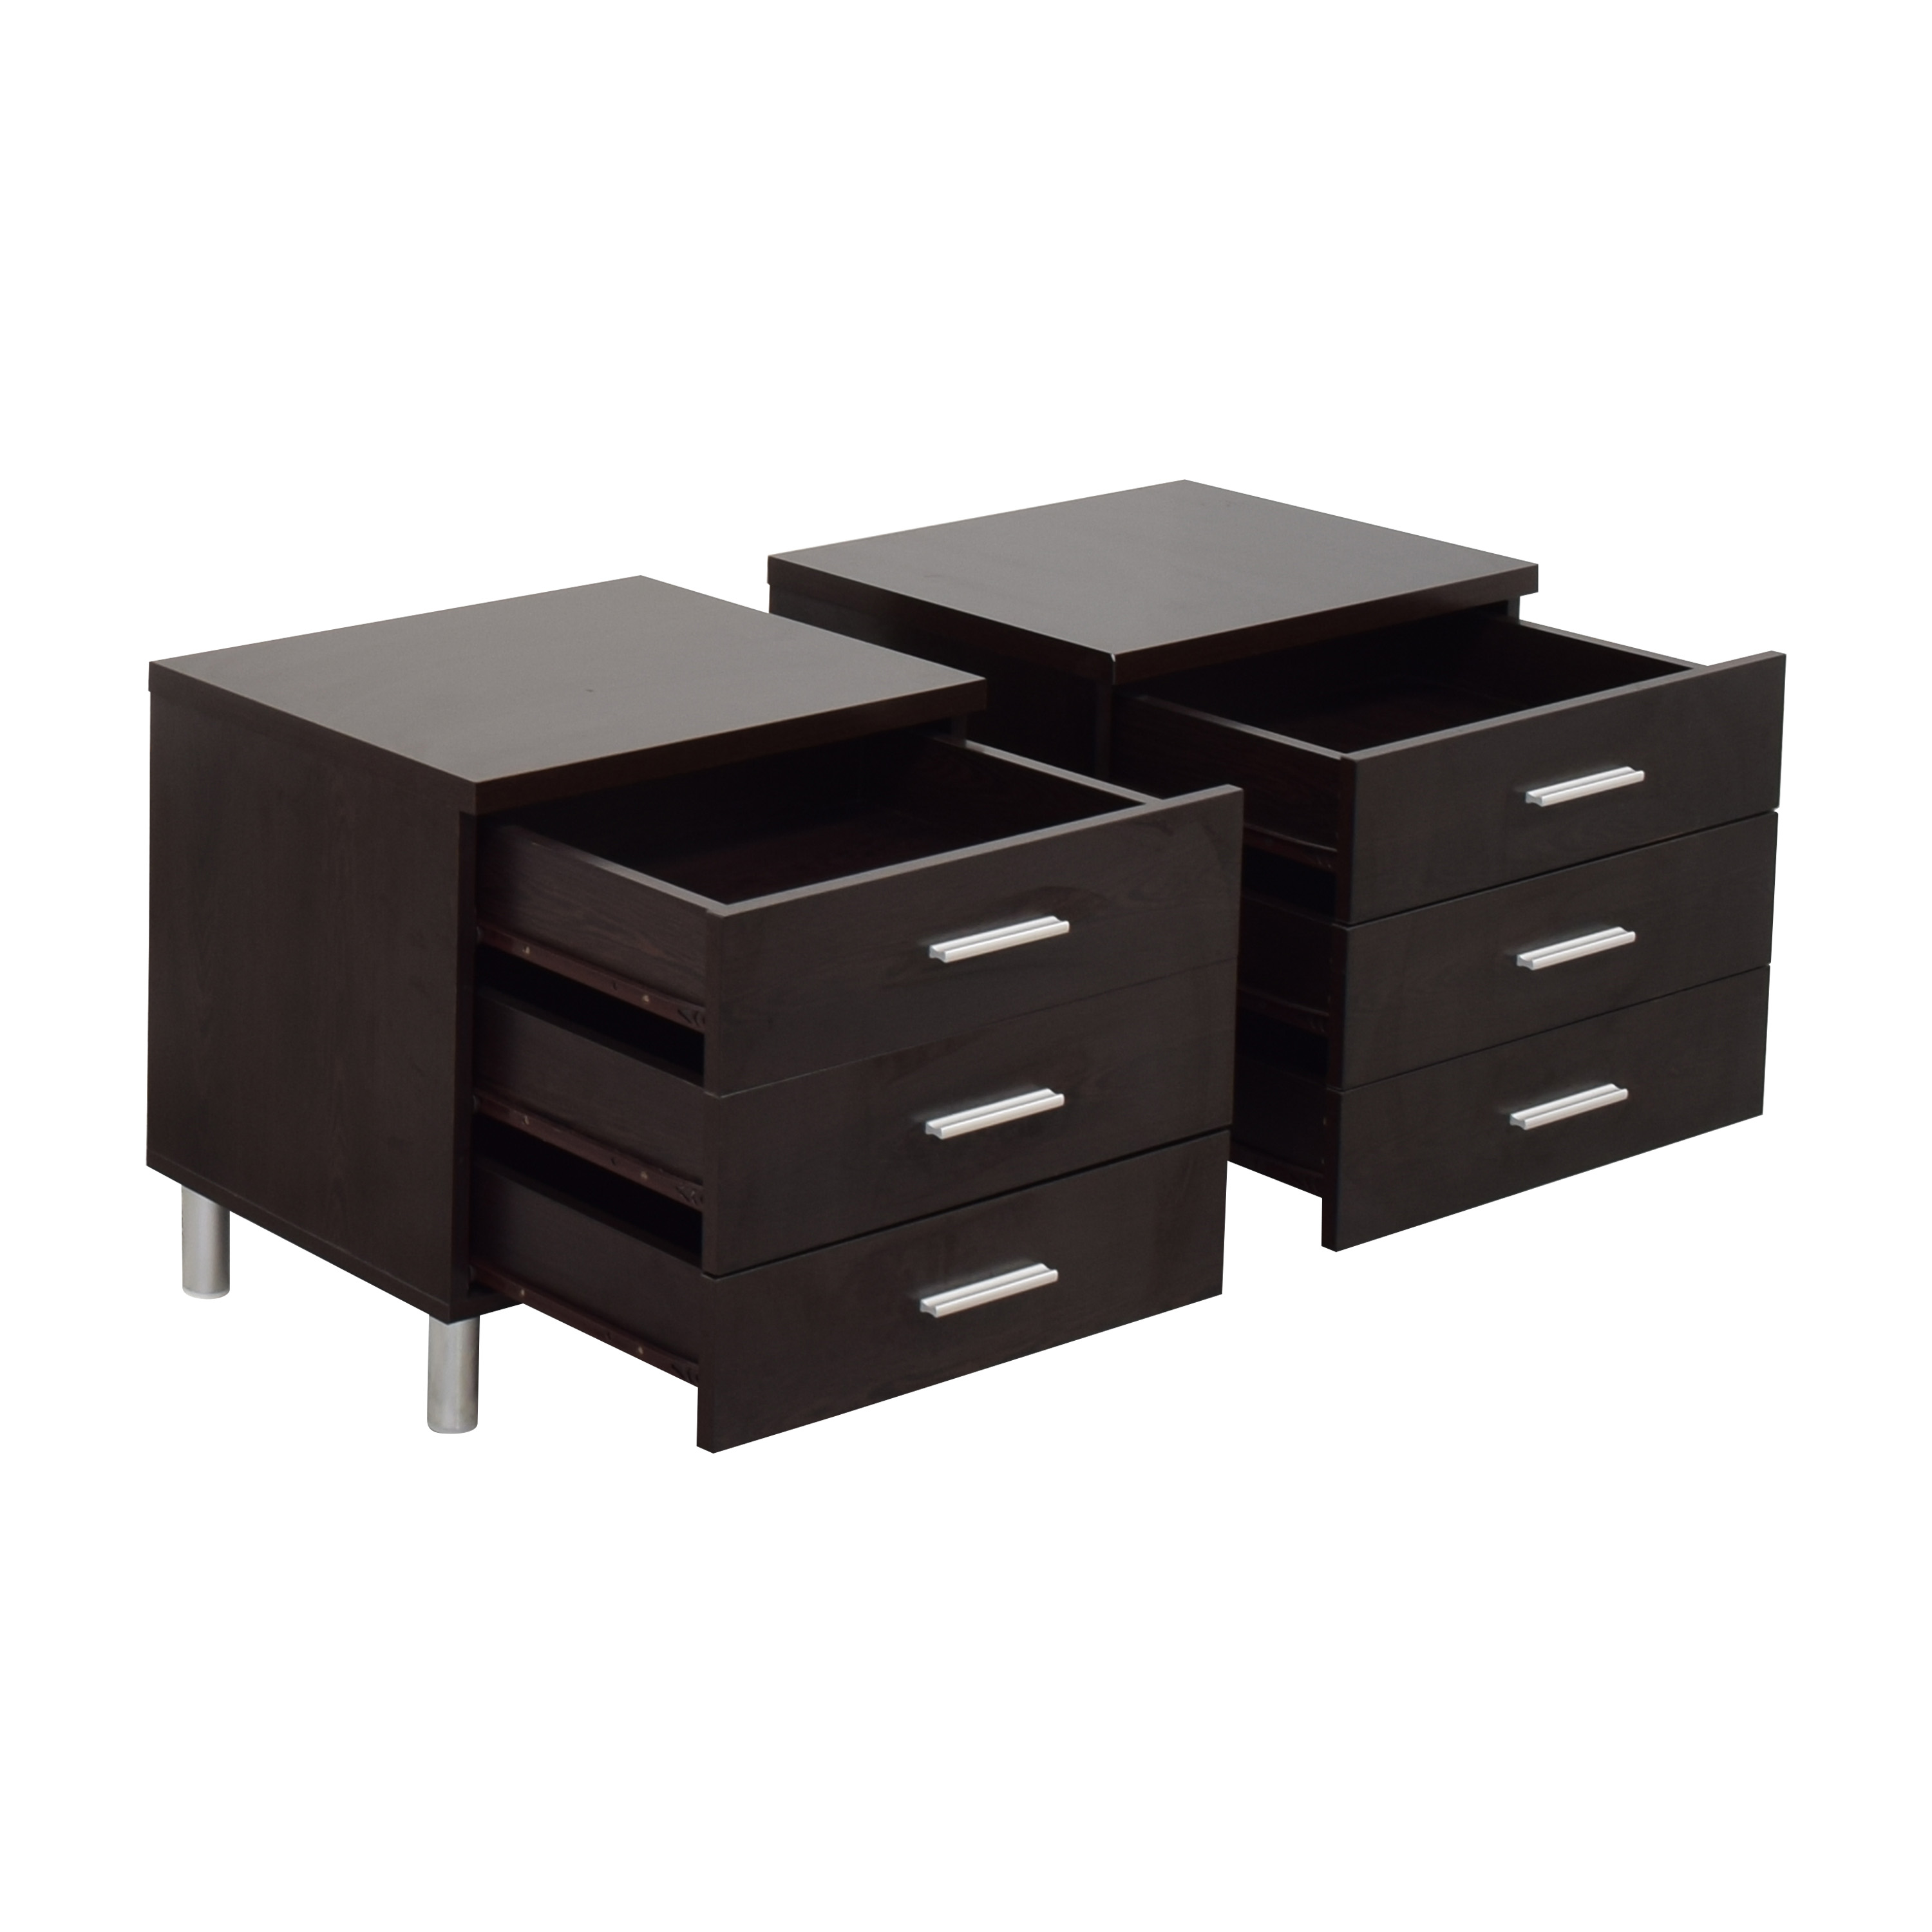 Contemporary Three Drawer Nightstands sale